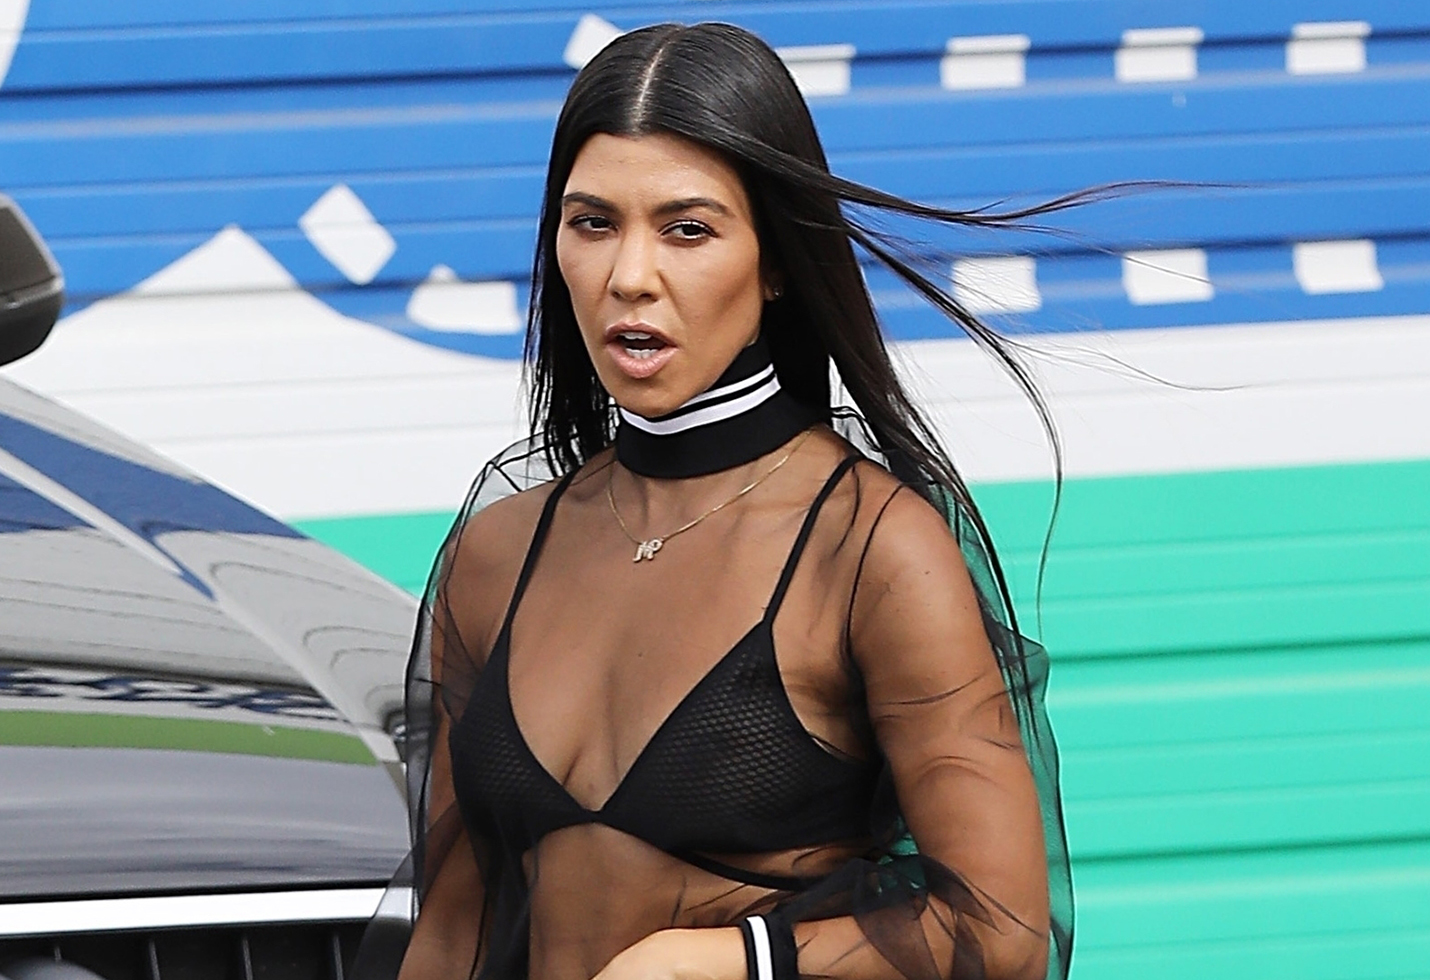 Kourtney Kardashian shows off her toned physique in a mesh top as she leaves the studio